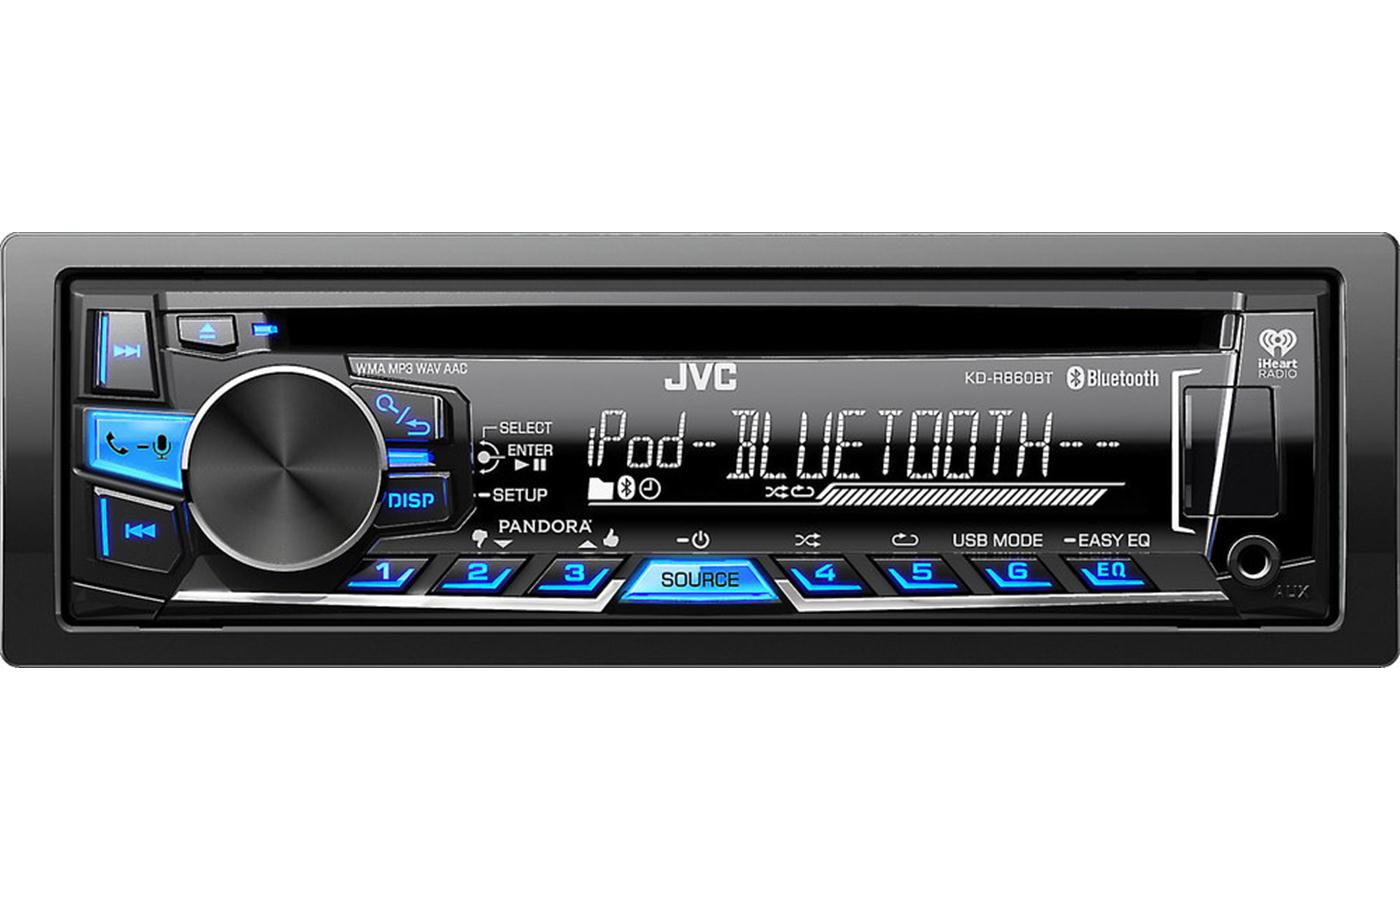 Jvc Kd R860bt Bluetooth Cd Usb Receiver on pioneer stereo wiring